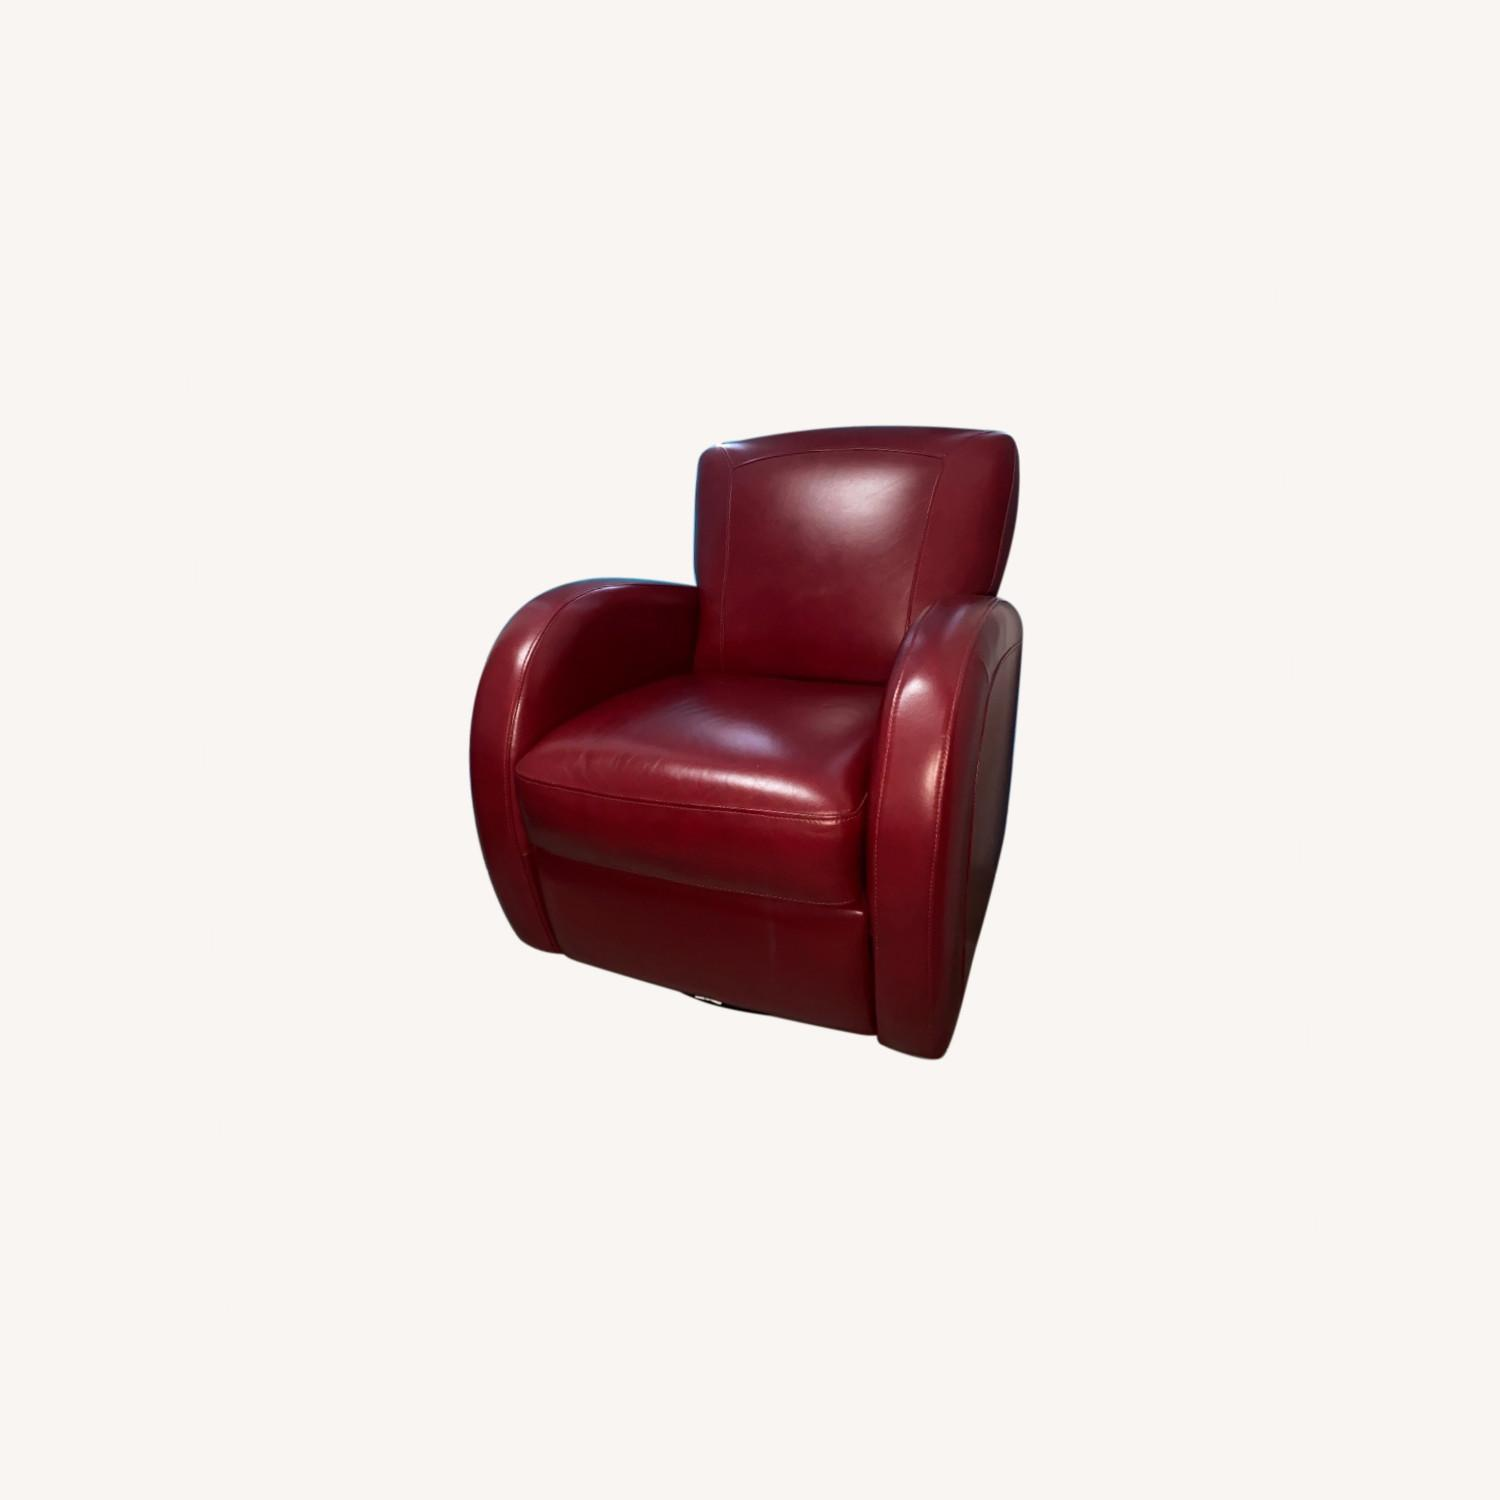 Bob's Discount Furniture Red Leather Accent Chair - image-0